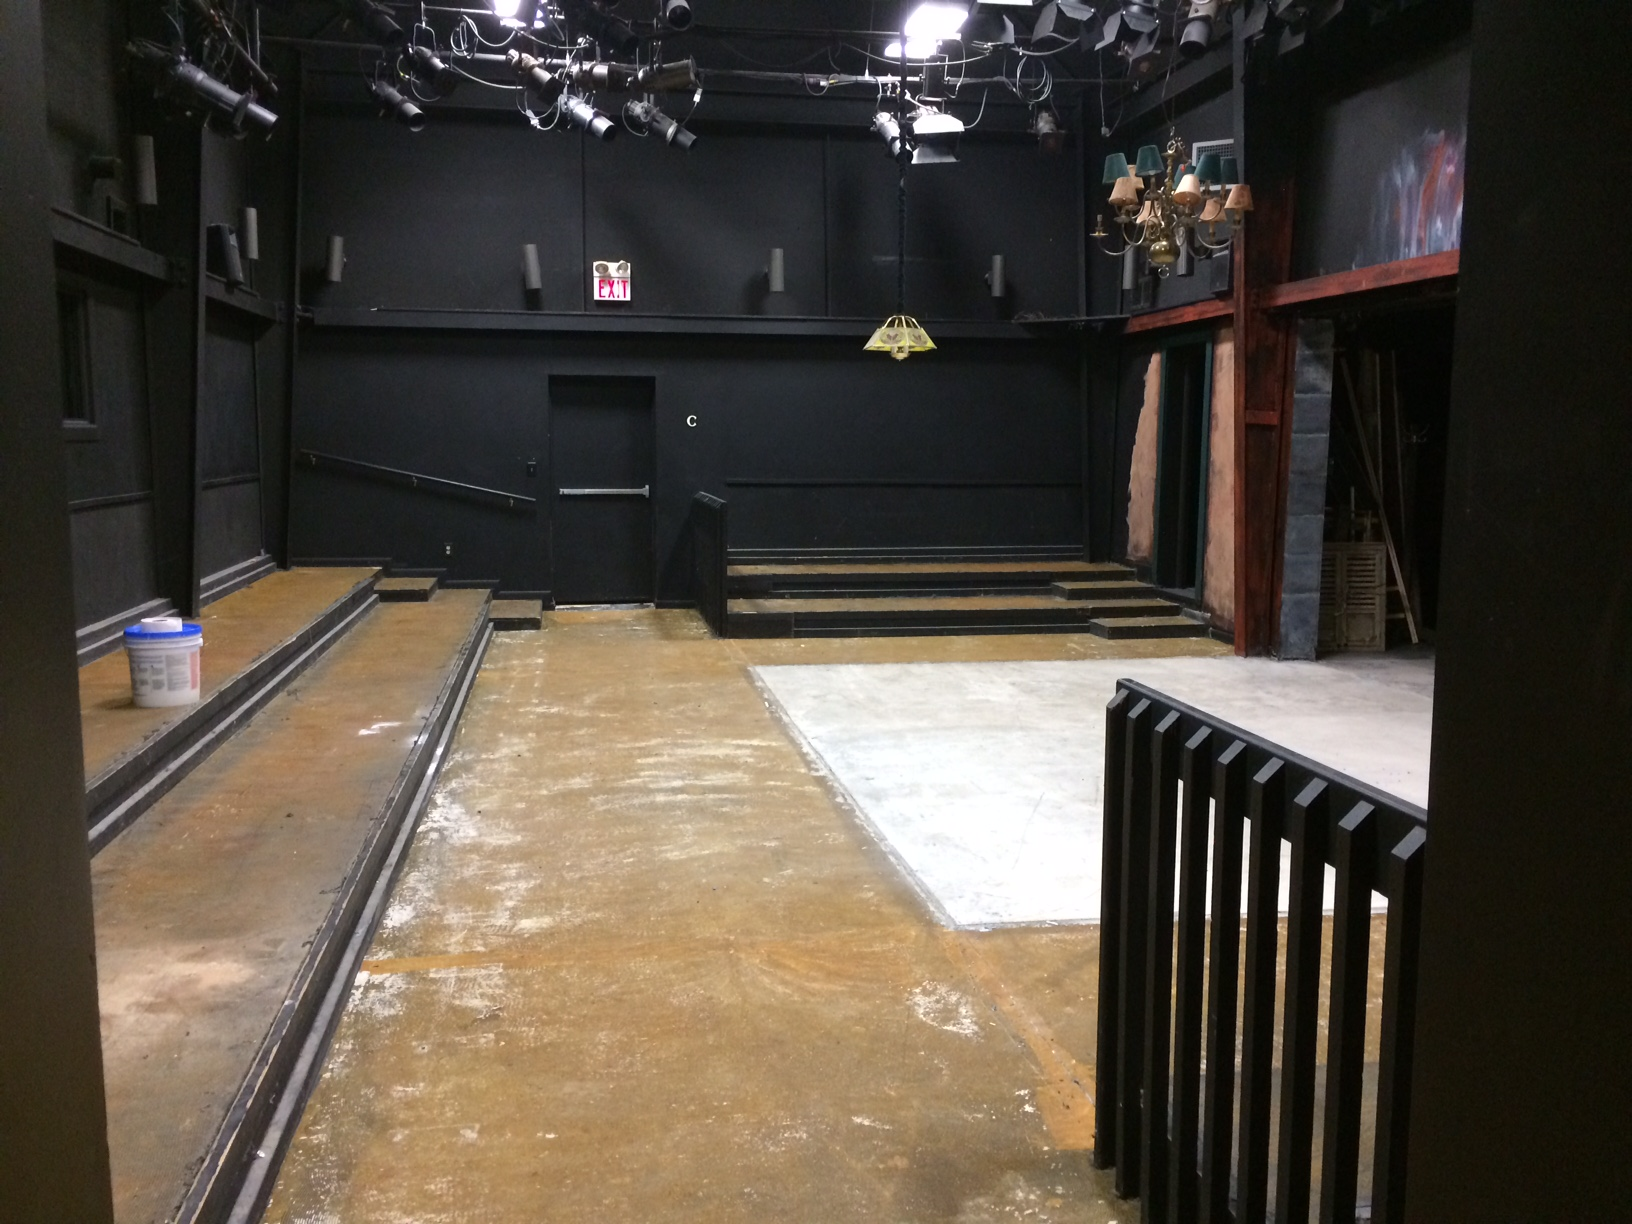 Carpet & Stage Floor Paint removed